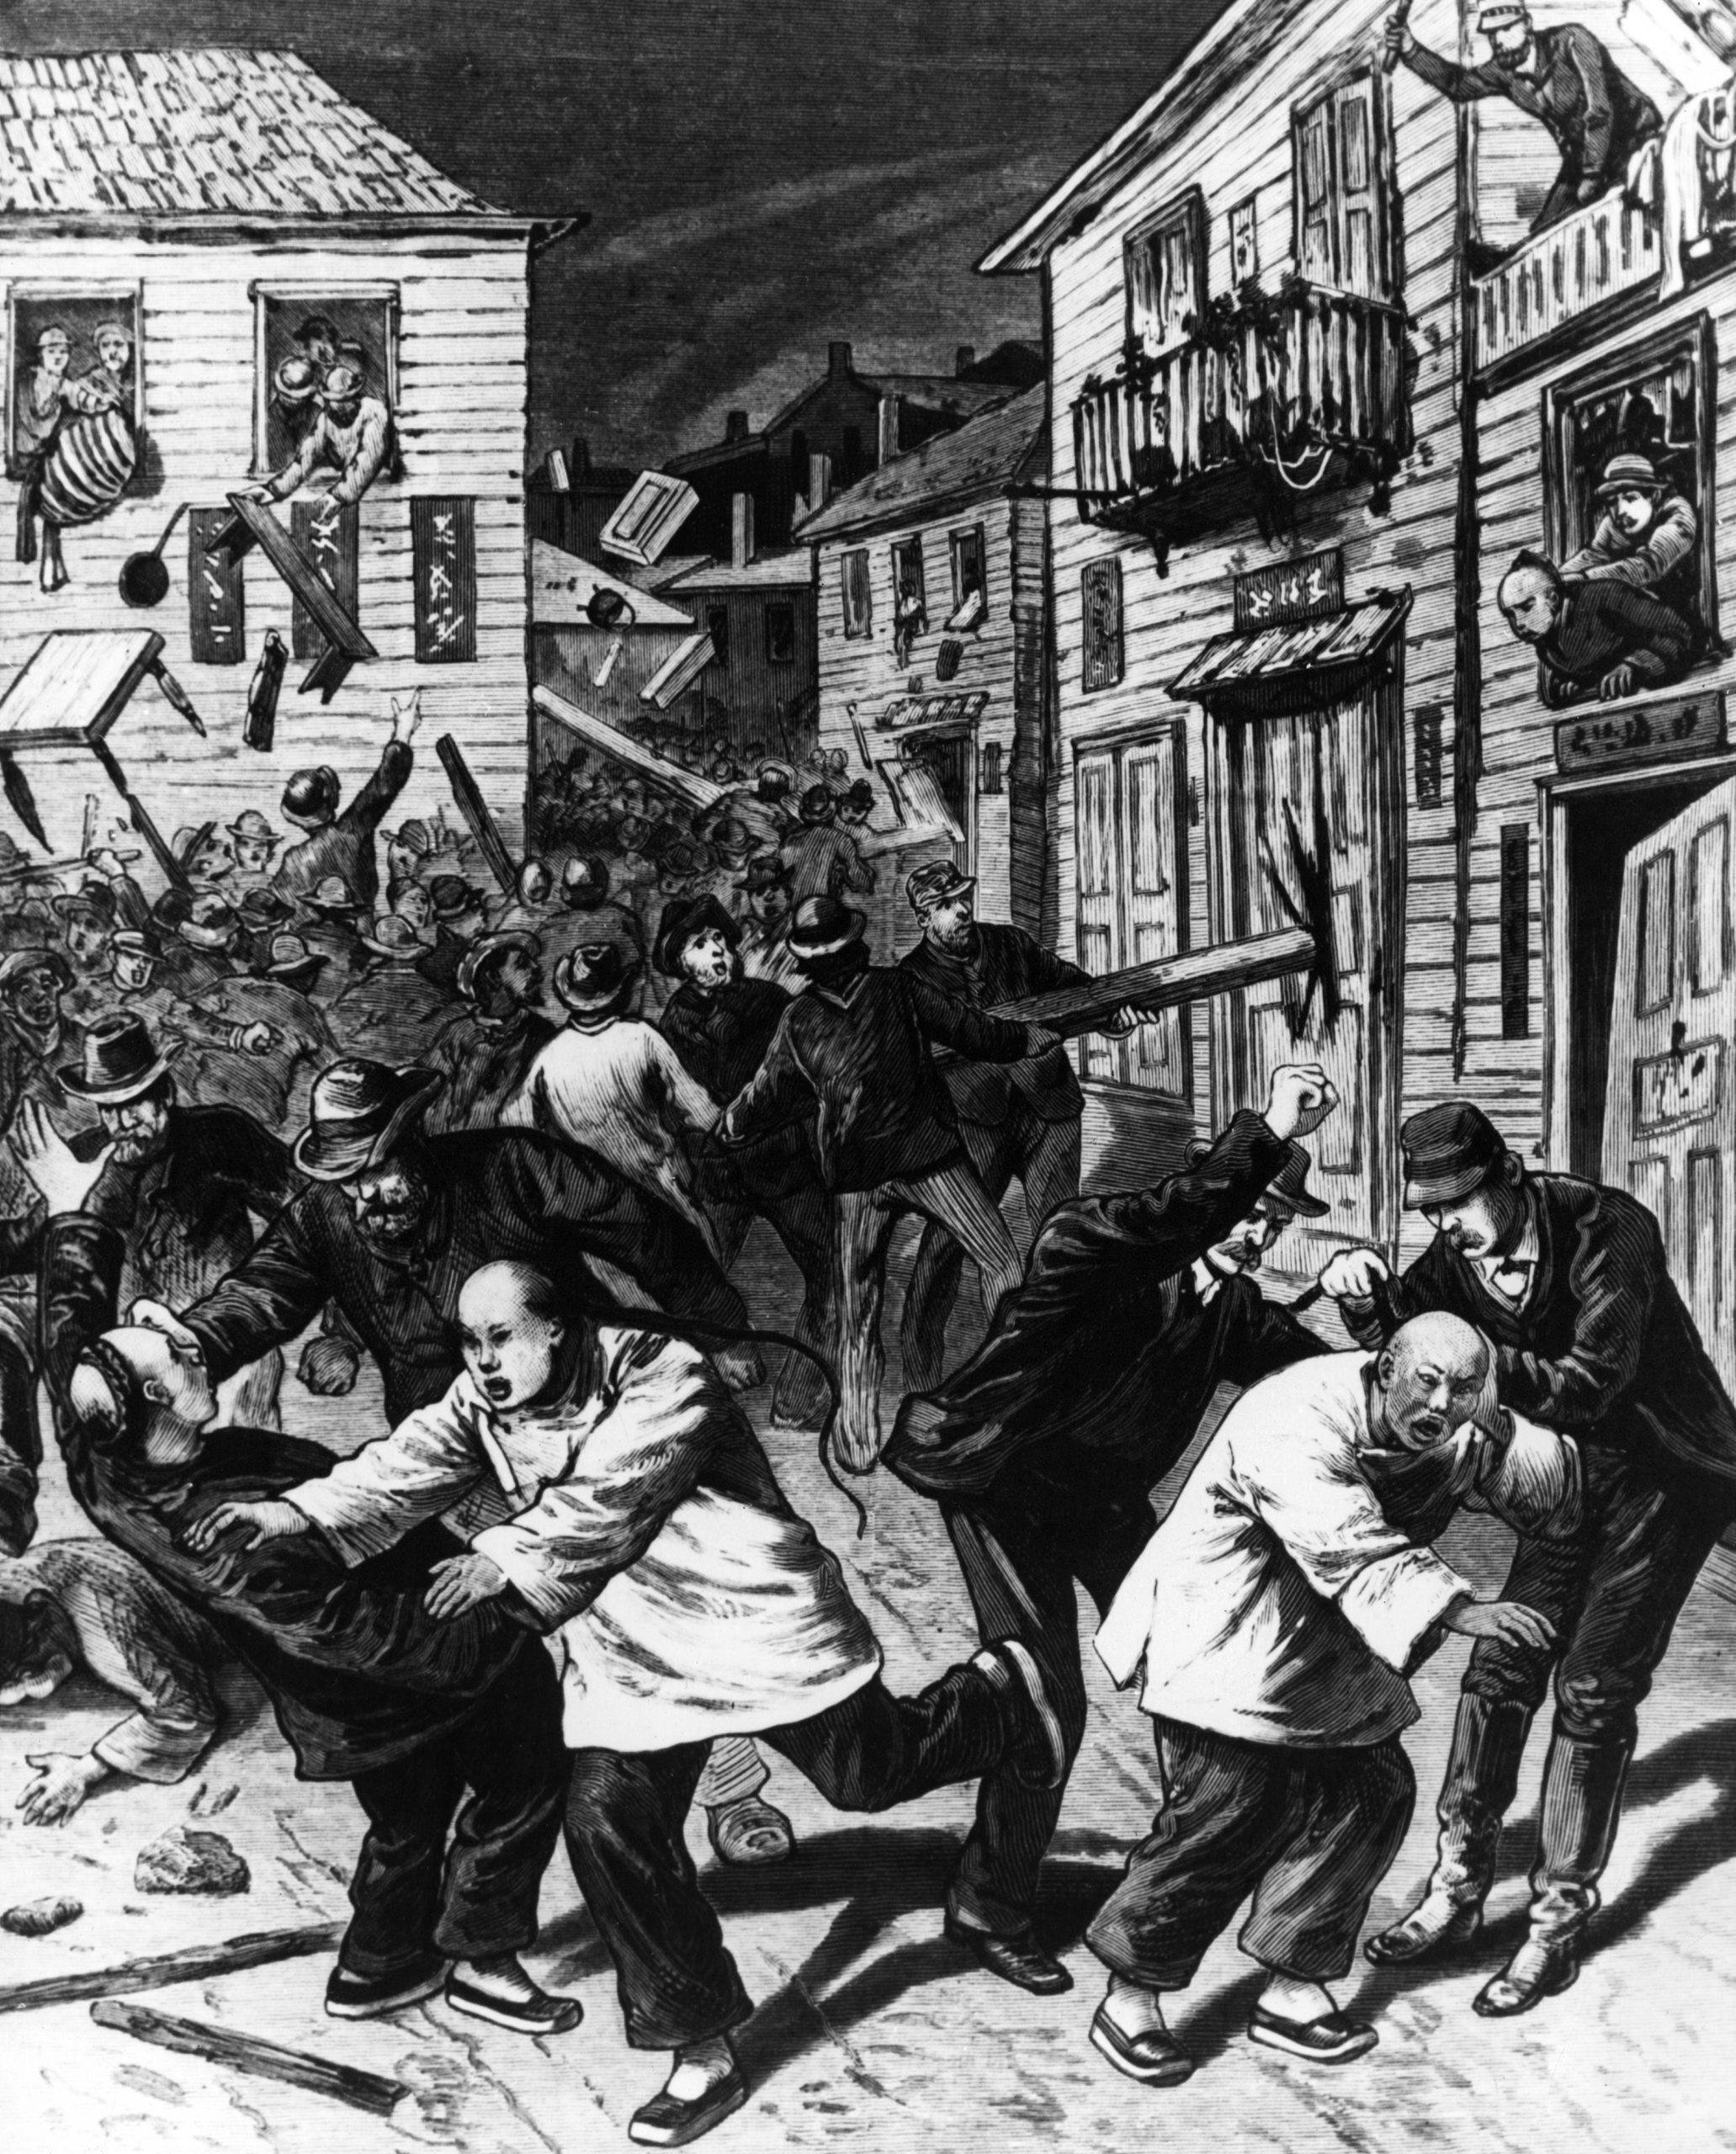 Denver's anti-Chinese race riot of Oct. 31, 1880, by N.B. Wilkens in Frank Leslie's Illustrated Newspaper, November 20, 1880